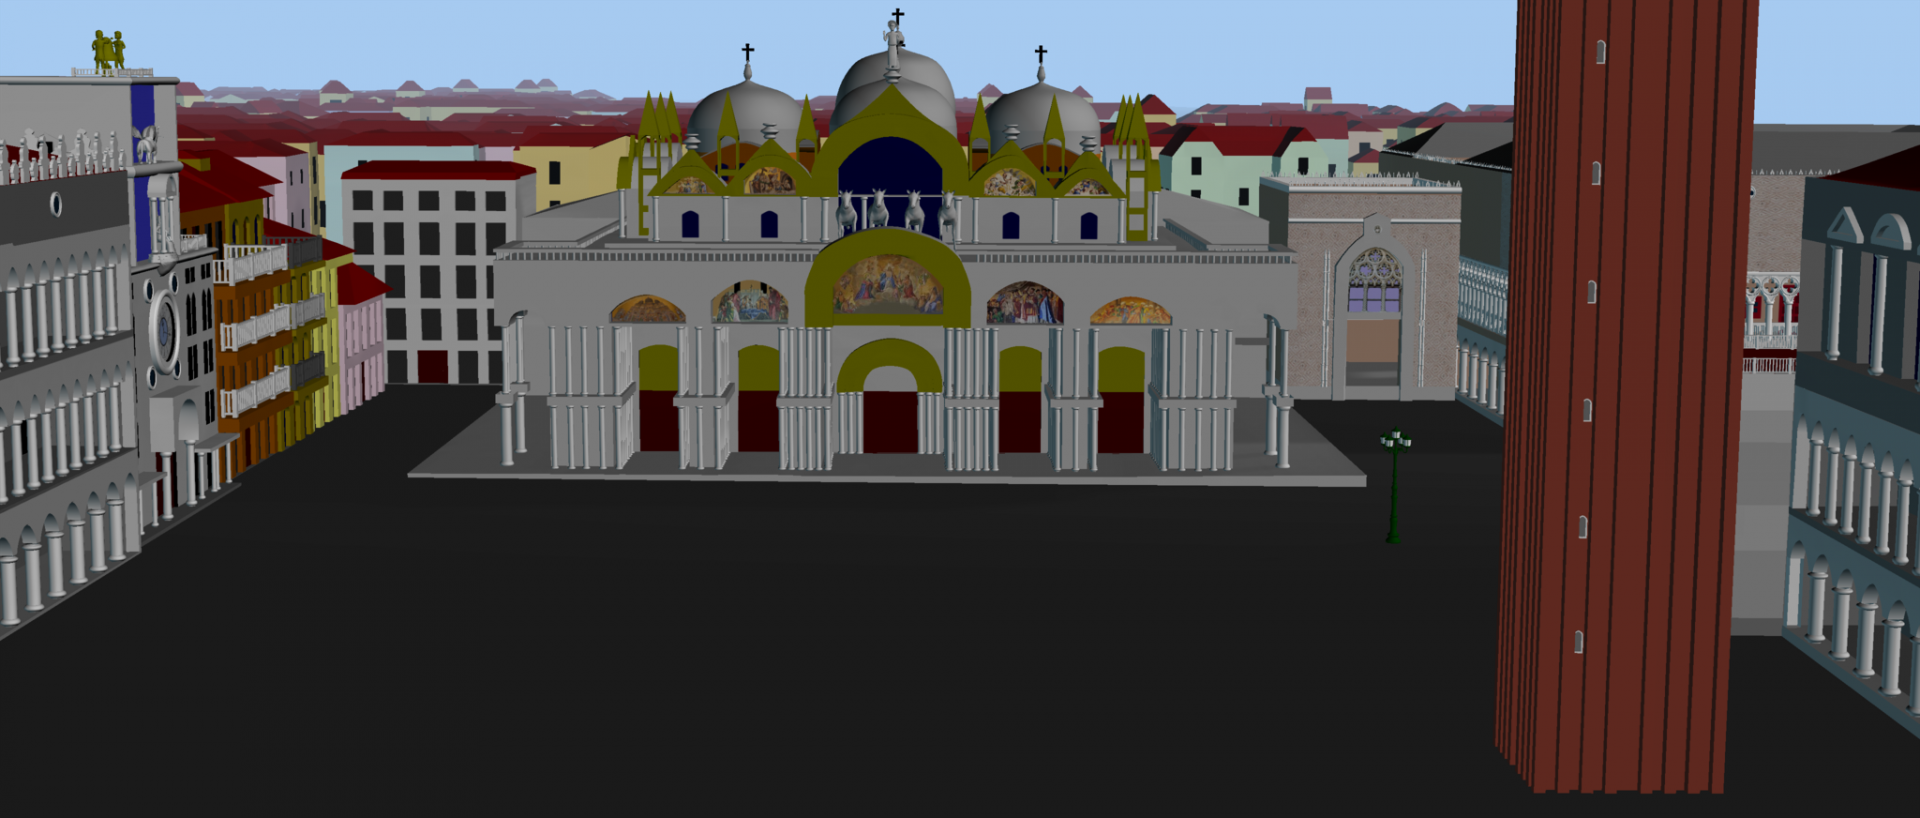 Venice in progress in Square toward new0.png